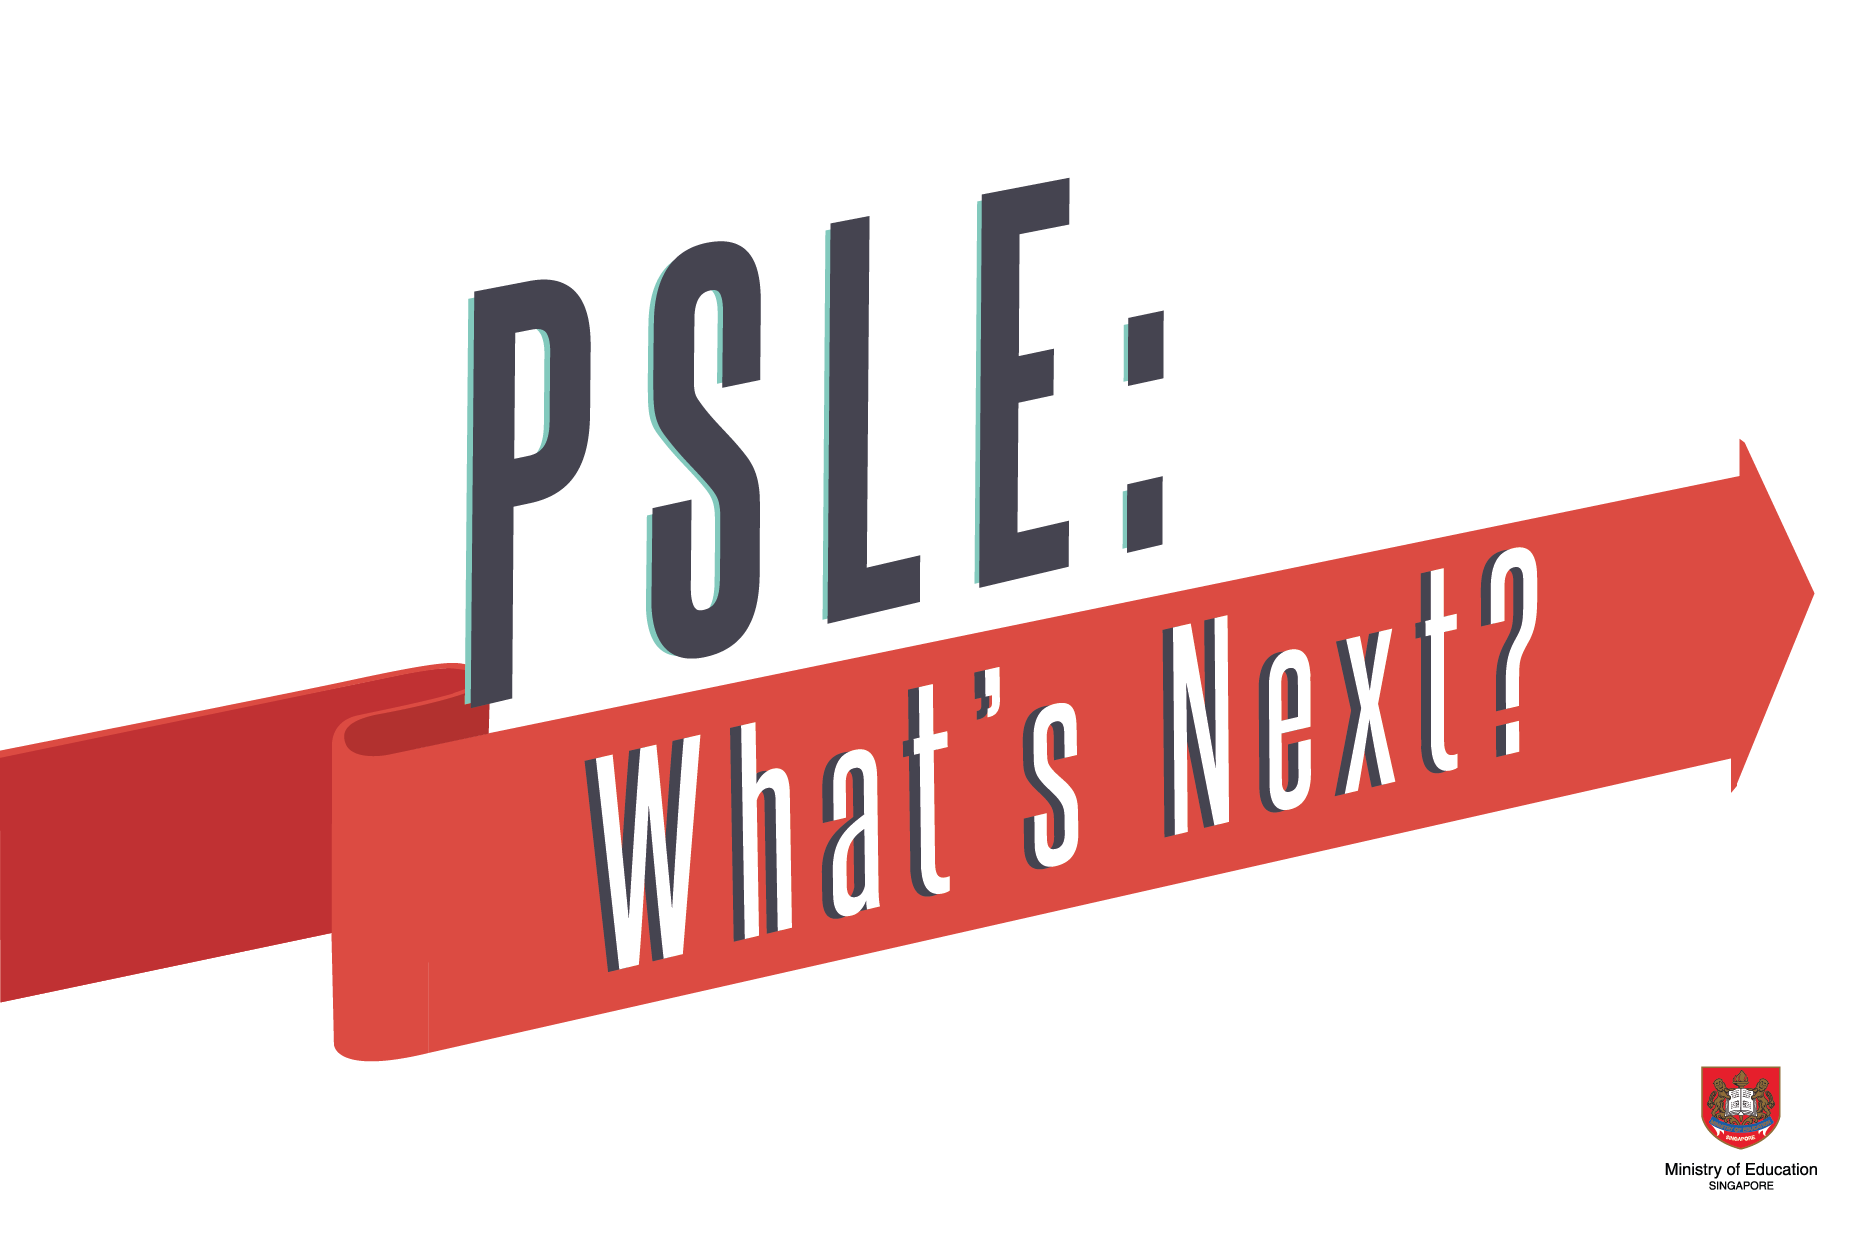 What's next after PSLE thumbnail